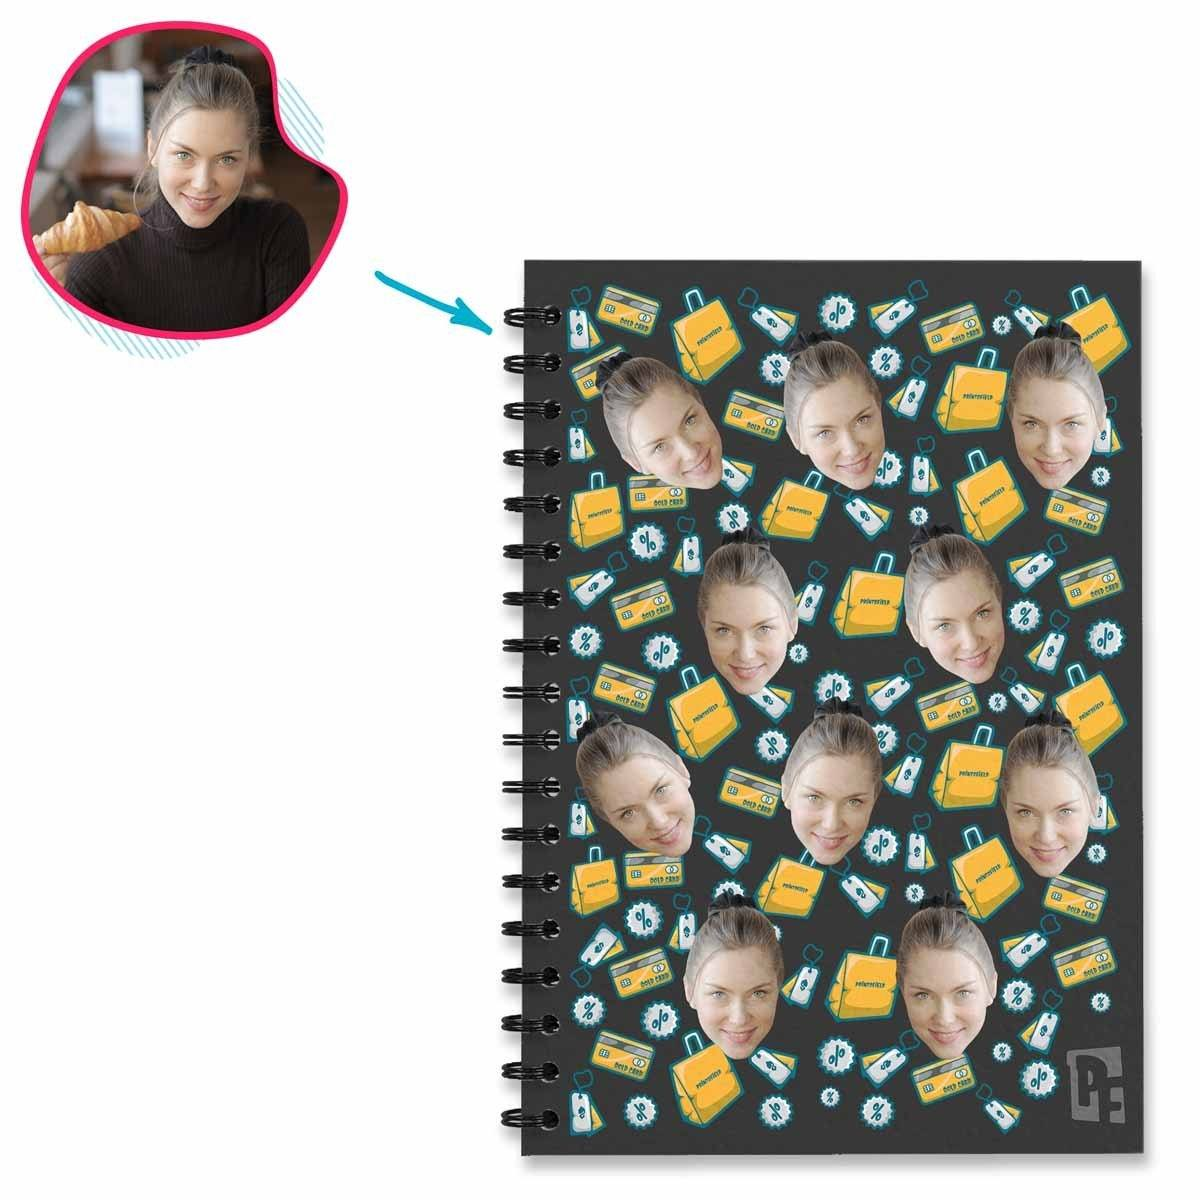 dark Shopping Notebook personalized with photo of face printed on them